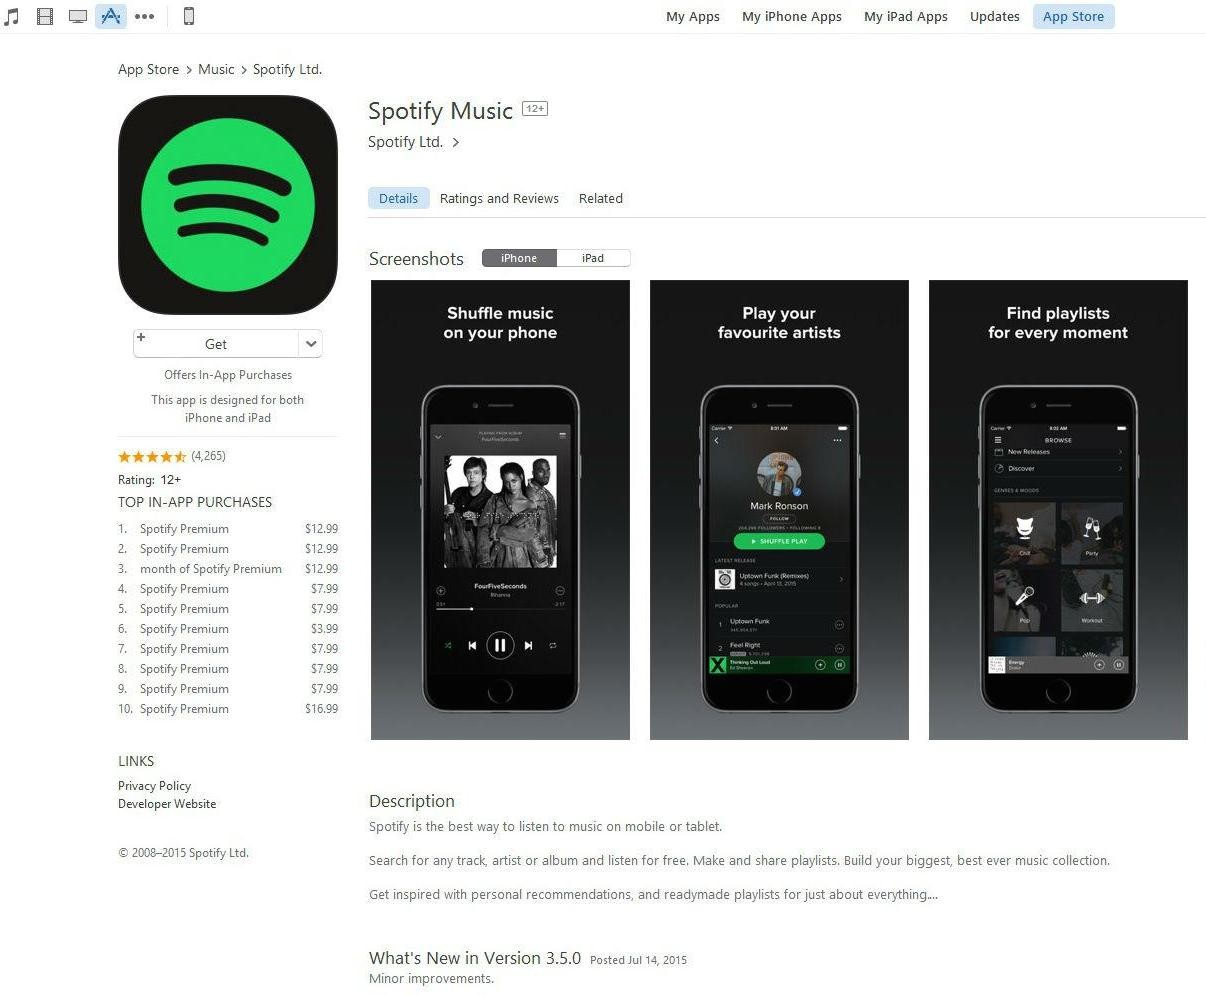 Spotify: Apple Rejected Our iOS Update To Drive iPhone